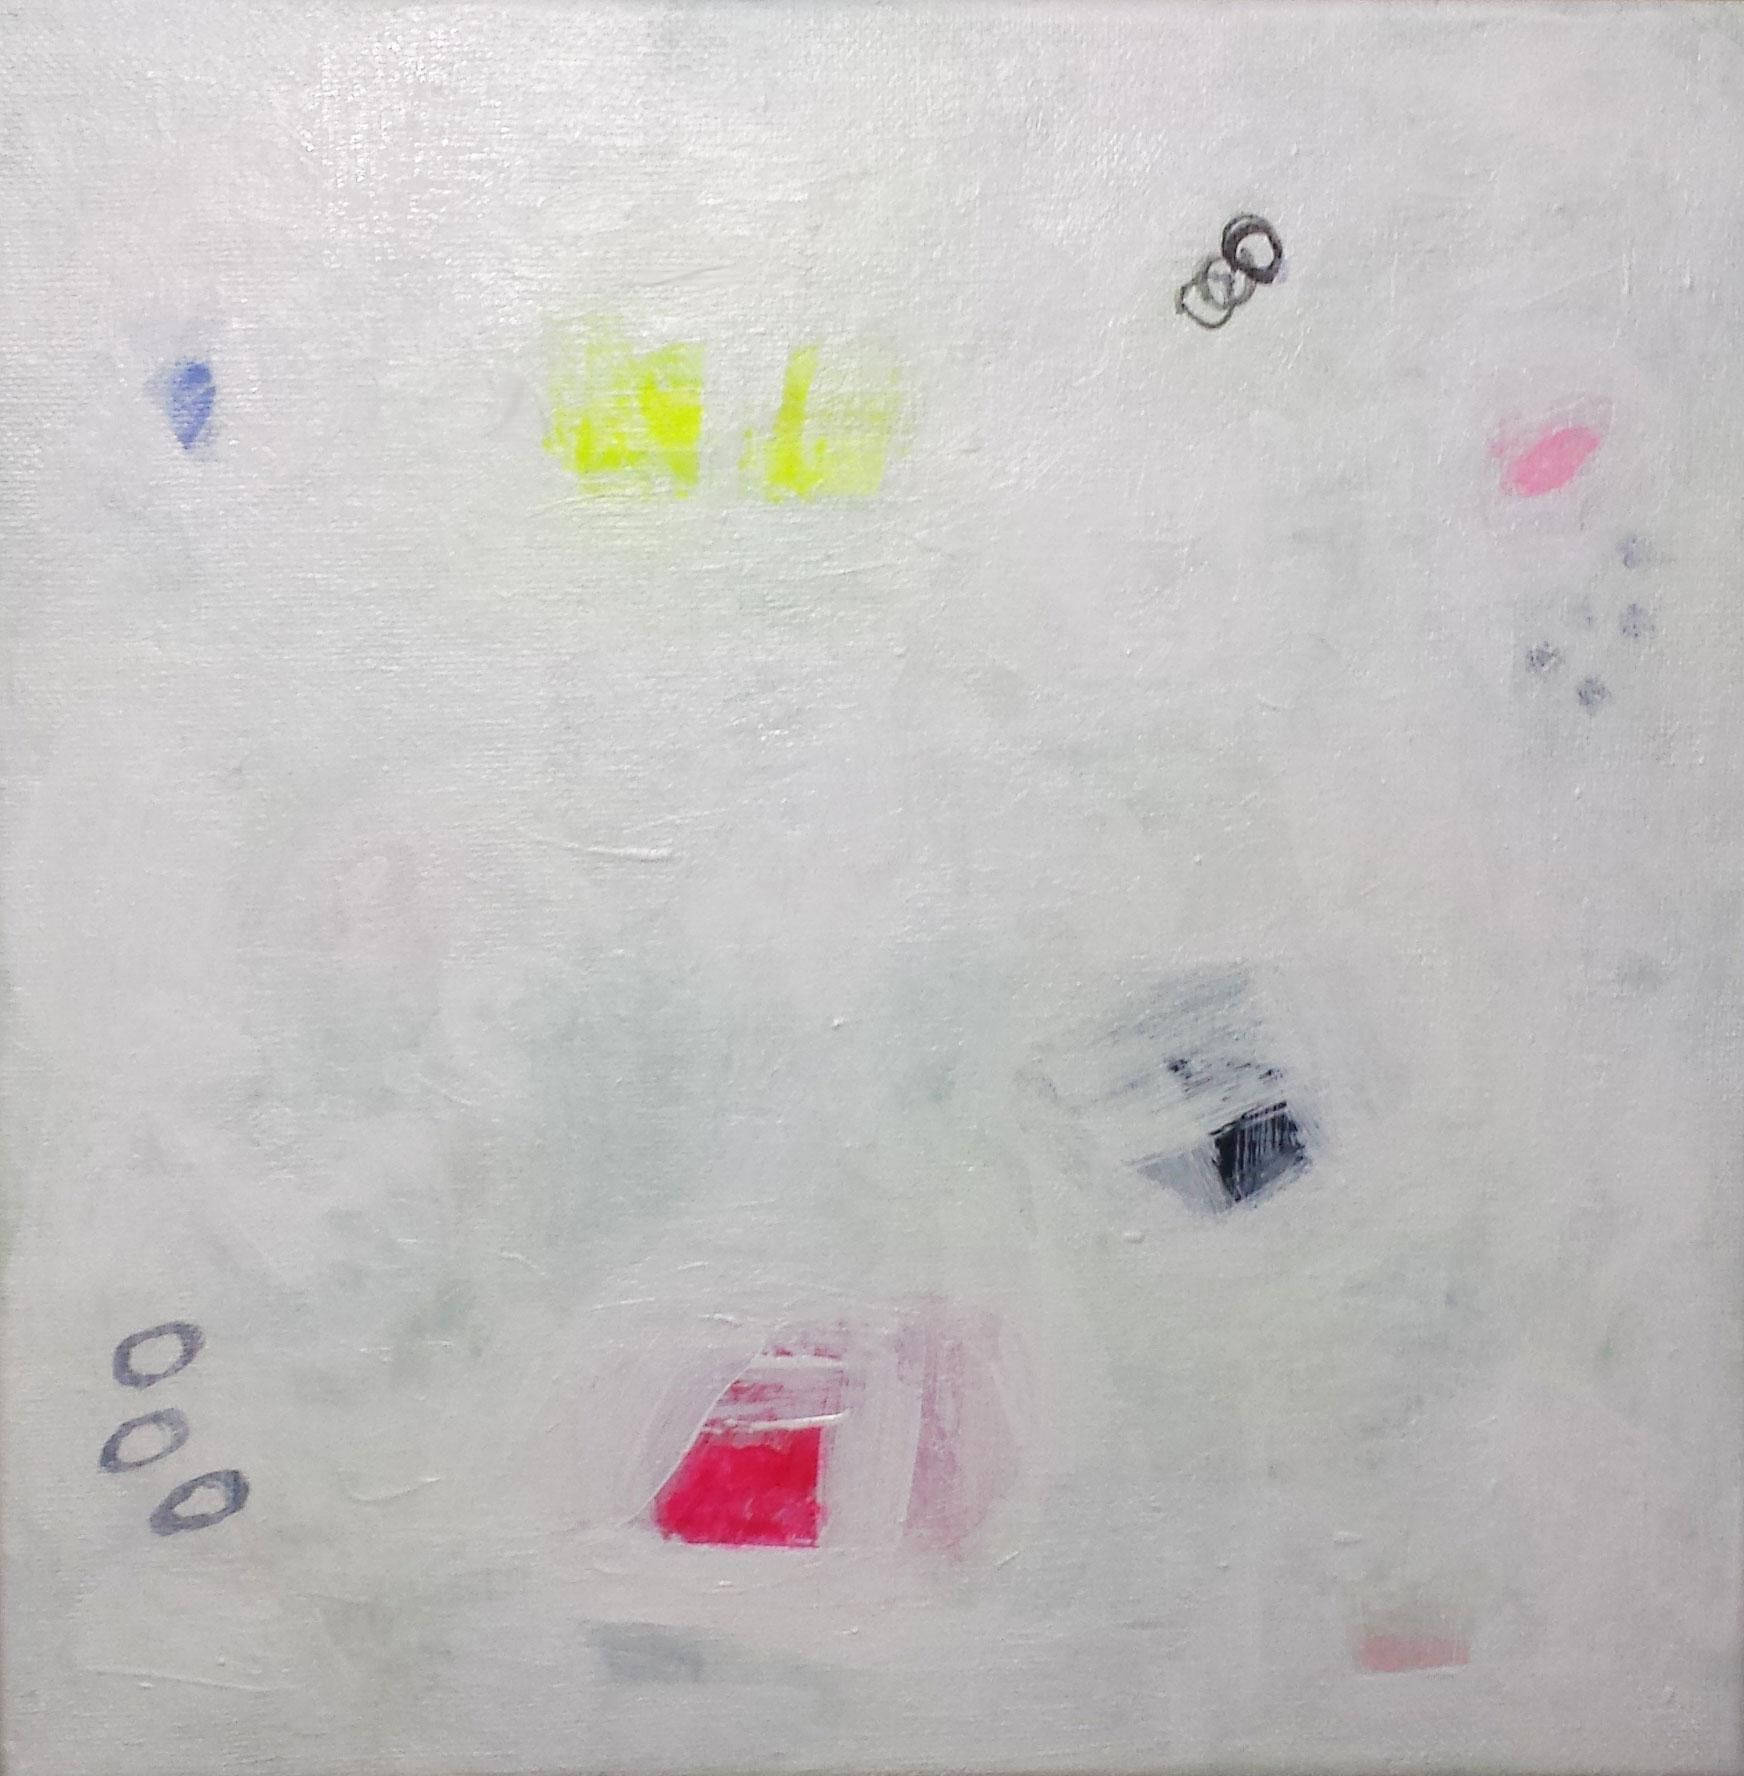 """Abstract Painting - """"White Landcape"""" by Susie Kate on Chairish.com"""